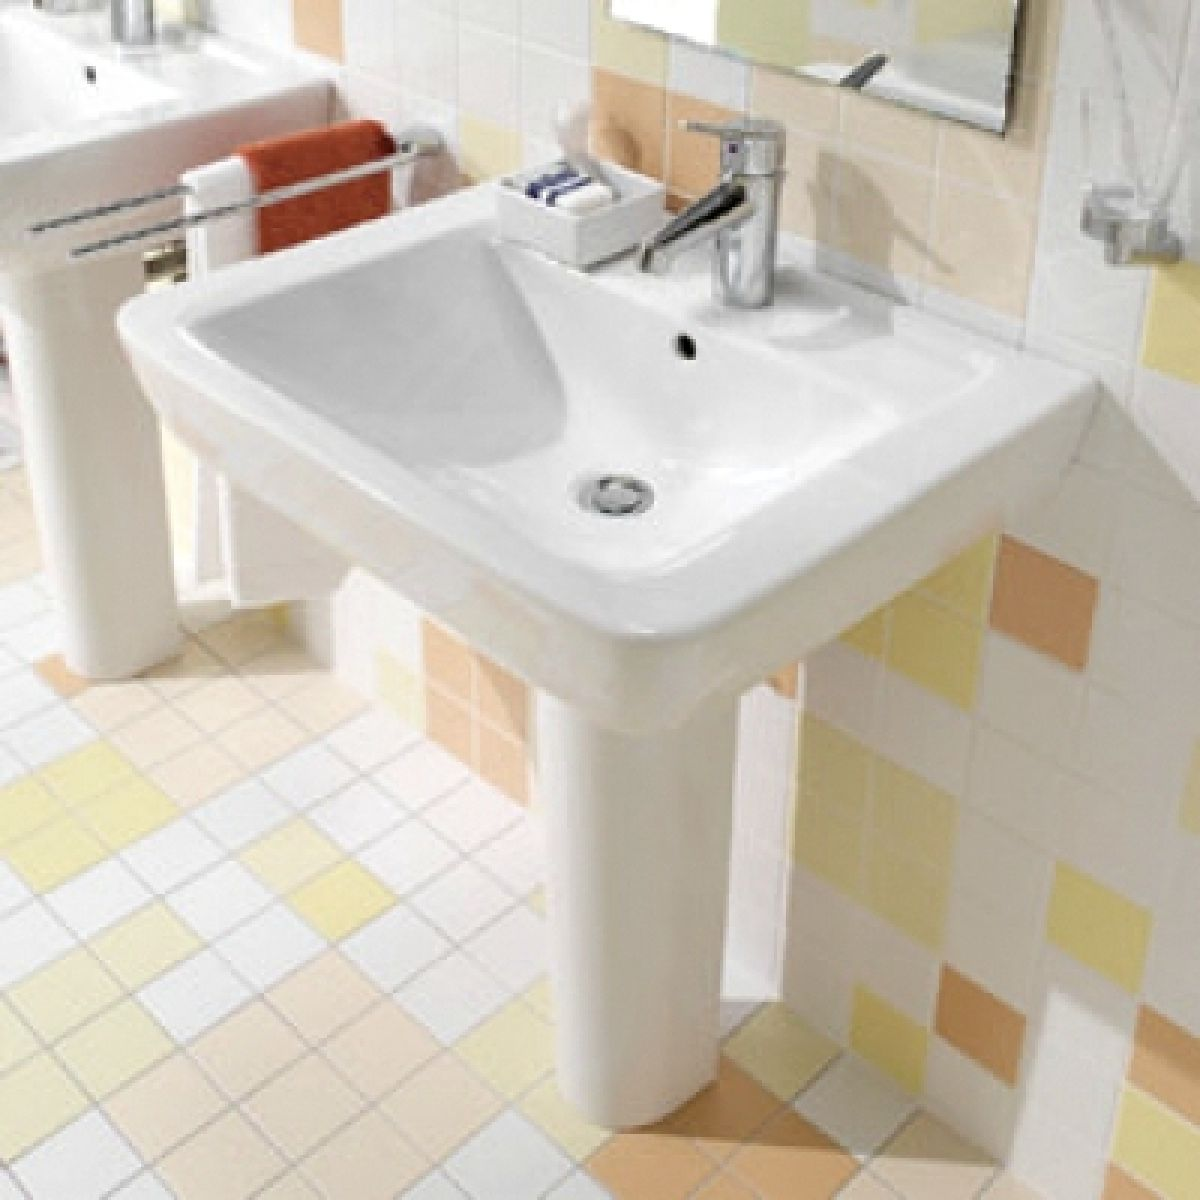 Salle De Bain Villeroy Et Boch ~ villeroy boch subway washbasin uk bathrooms